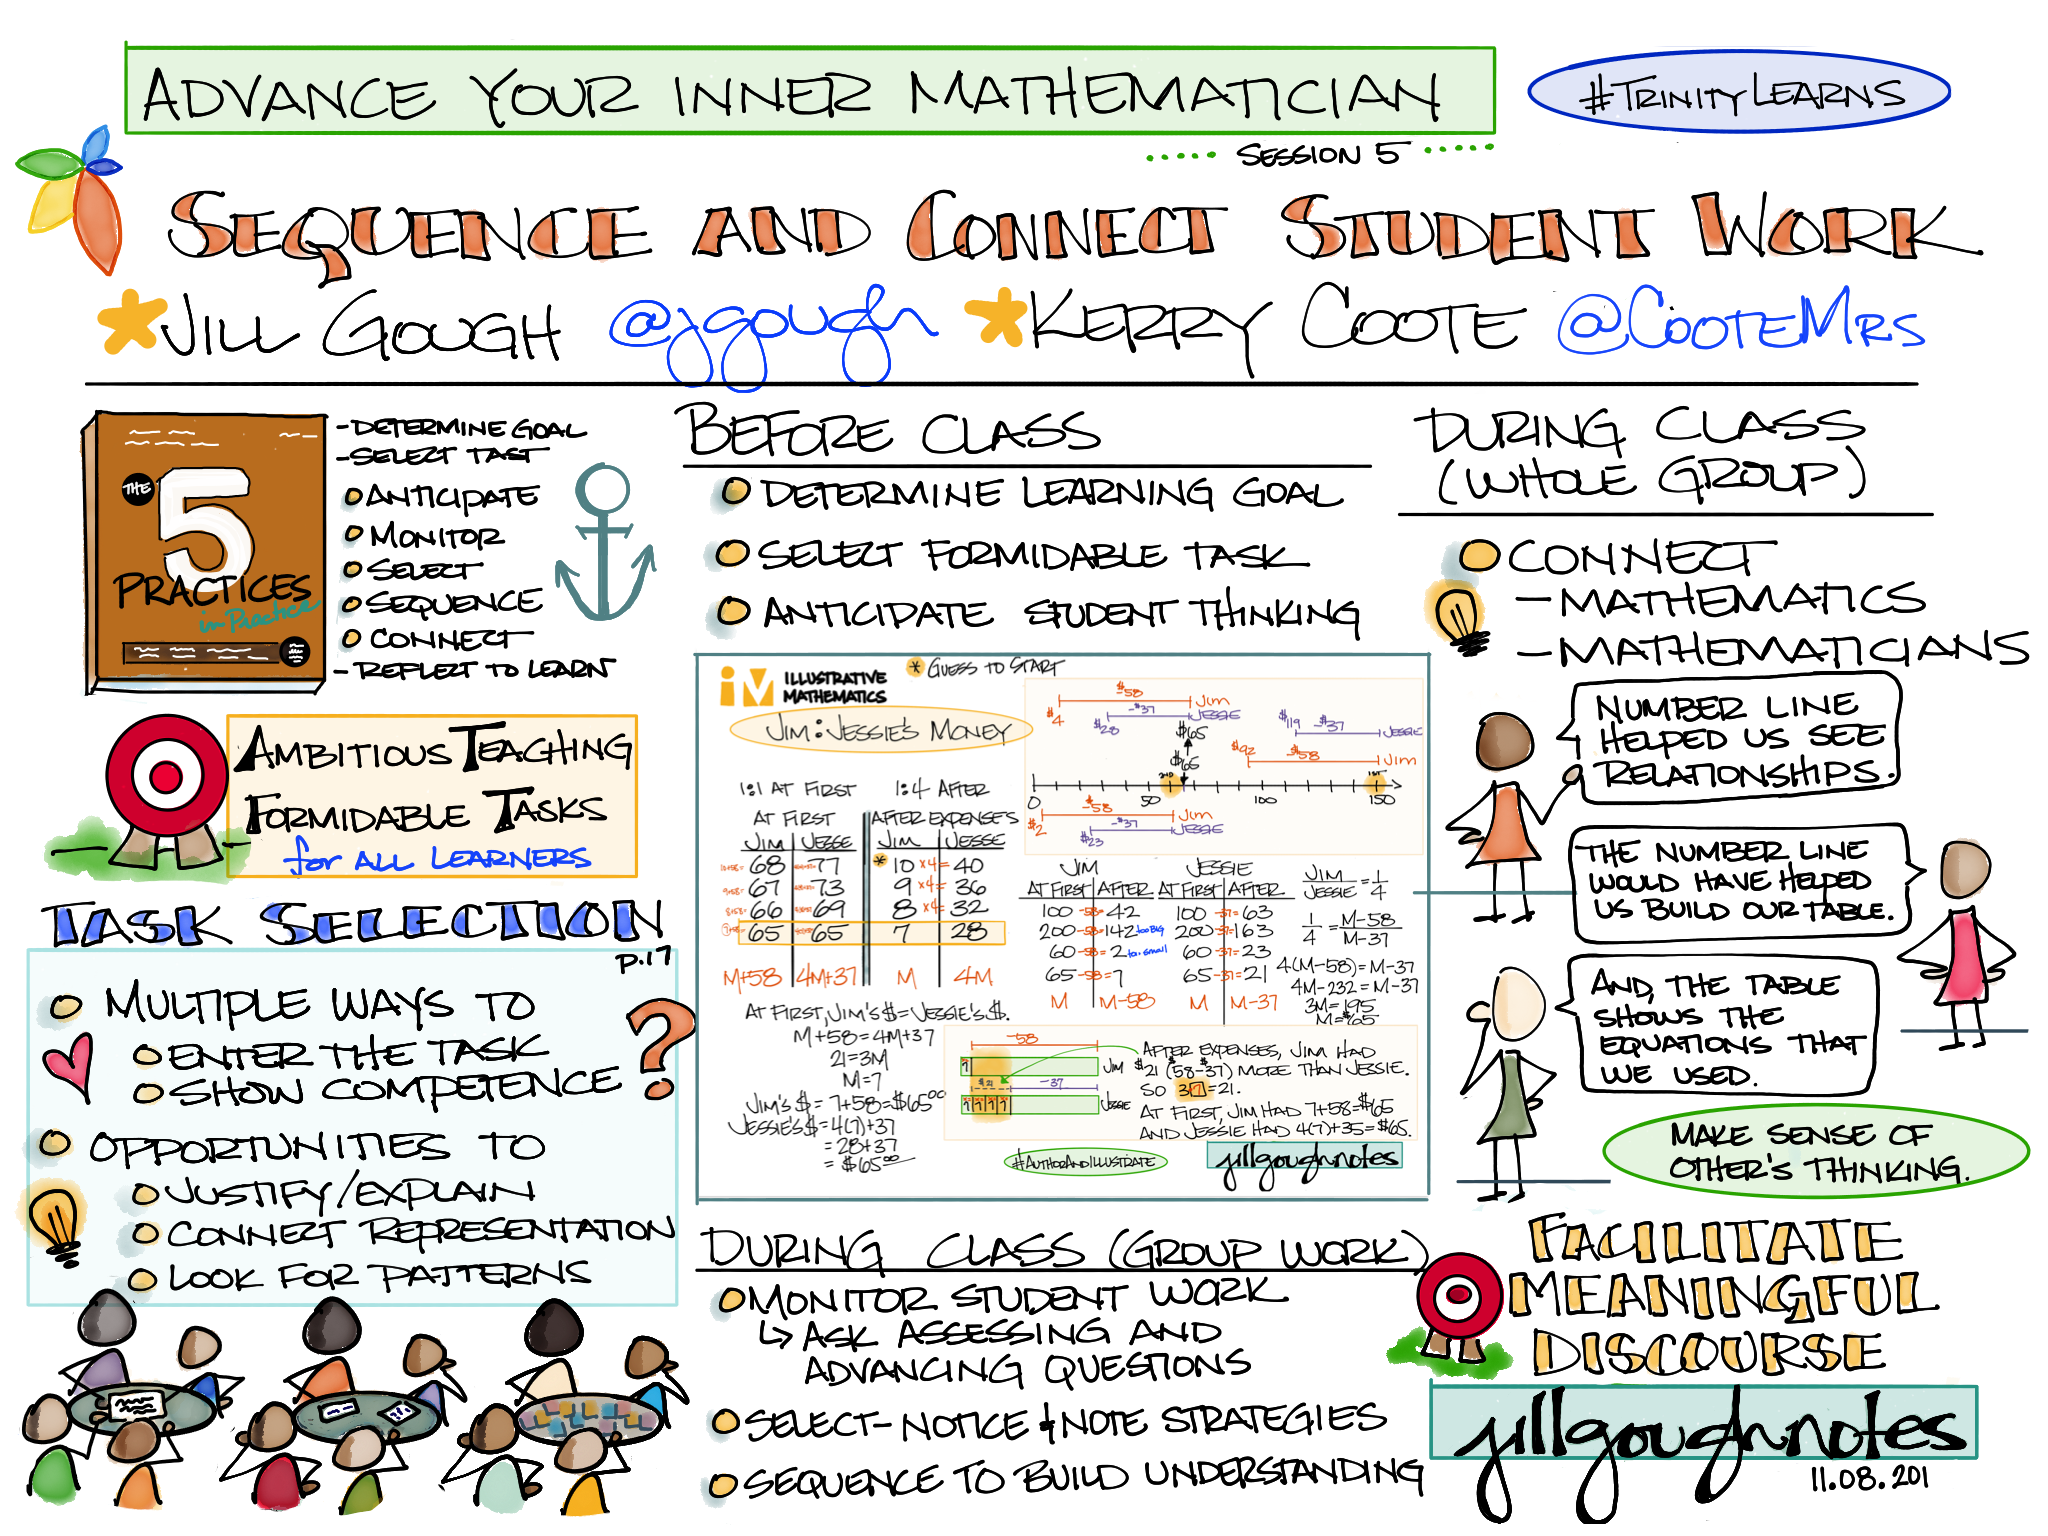 #AdvanceYourInnerMathematician session 5 #TrinityLearns with @jgough @CooteMrs HMW connect mathematicians, mathematical ideas, and mathematical representations? #AuthorAndIllustrate #5Practices #NCTMP2A task from @IllustrateMath #grateful